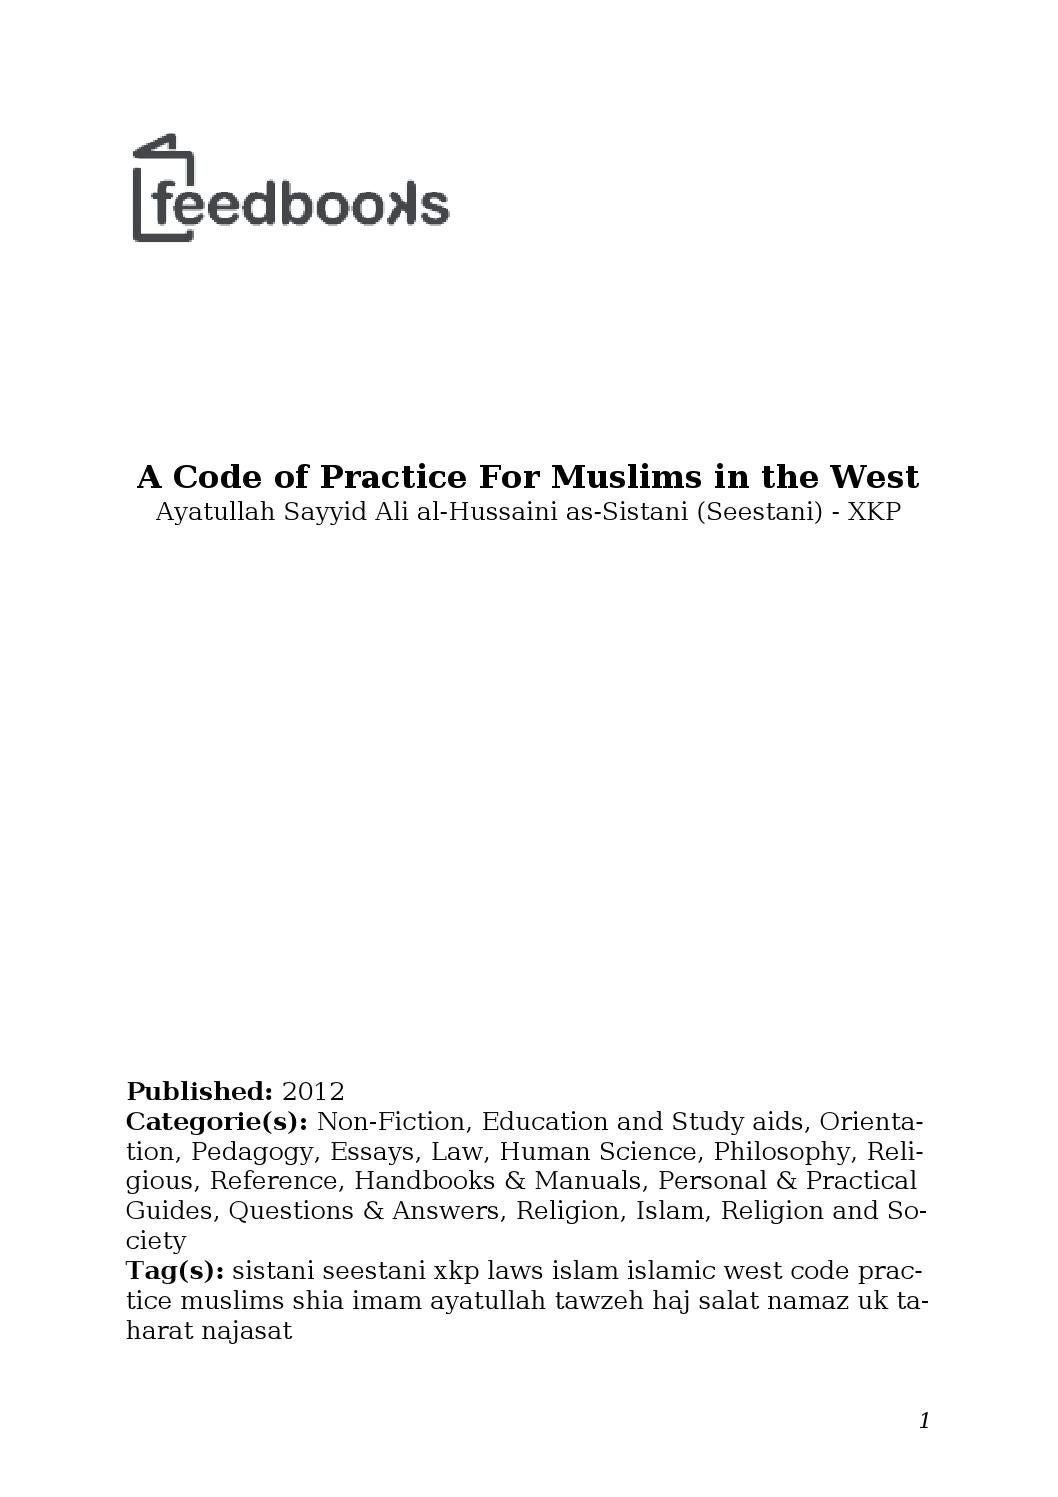 Islam and the west essay